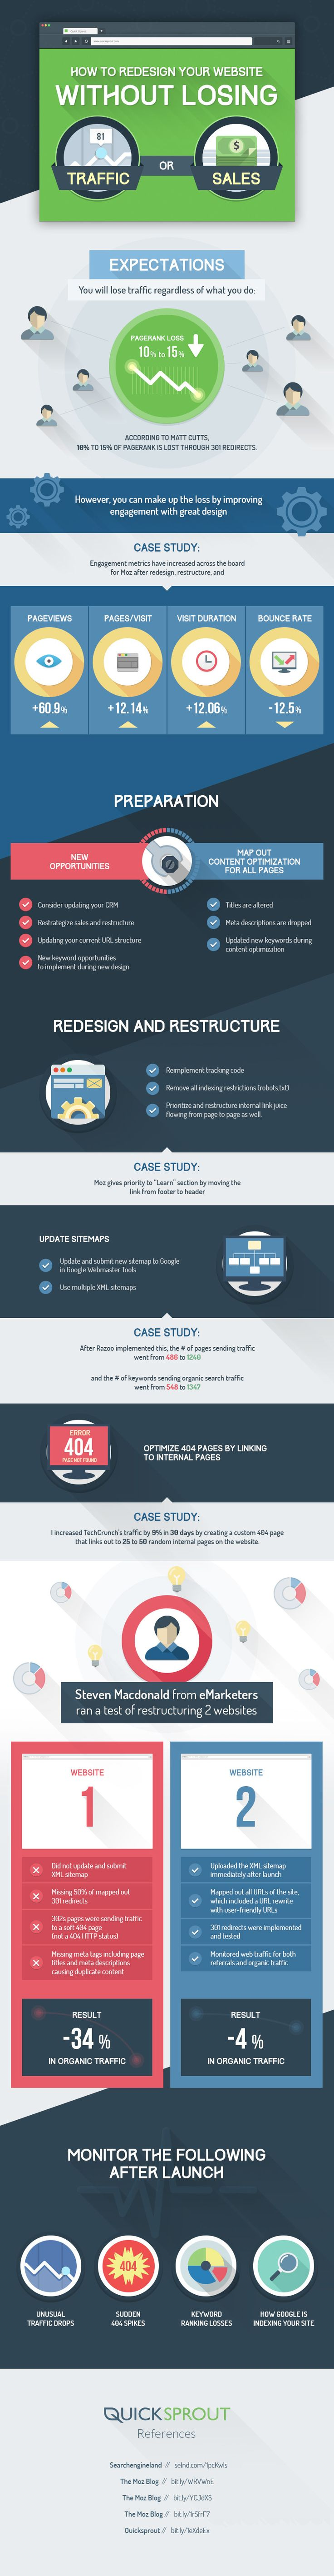 Visualistan: How to Redesign Your Website Without Losing Traffic or Sales #infographic